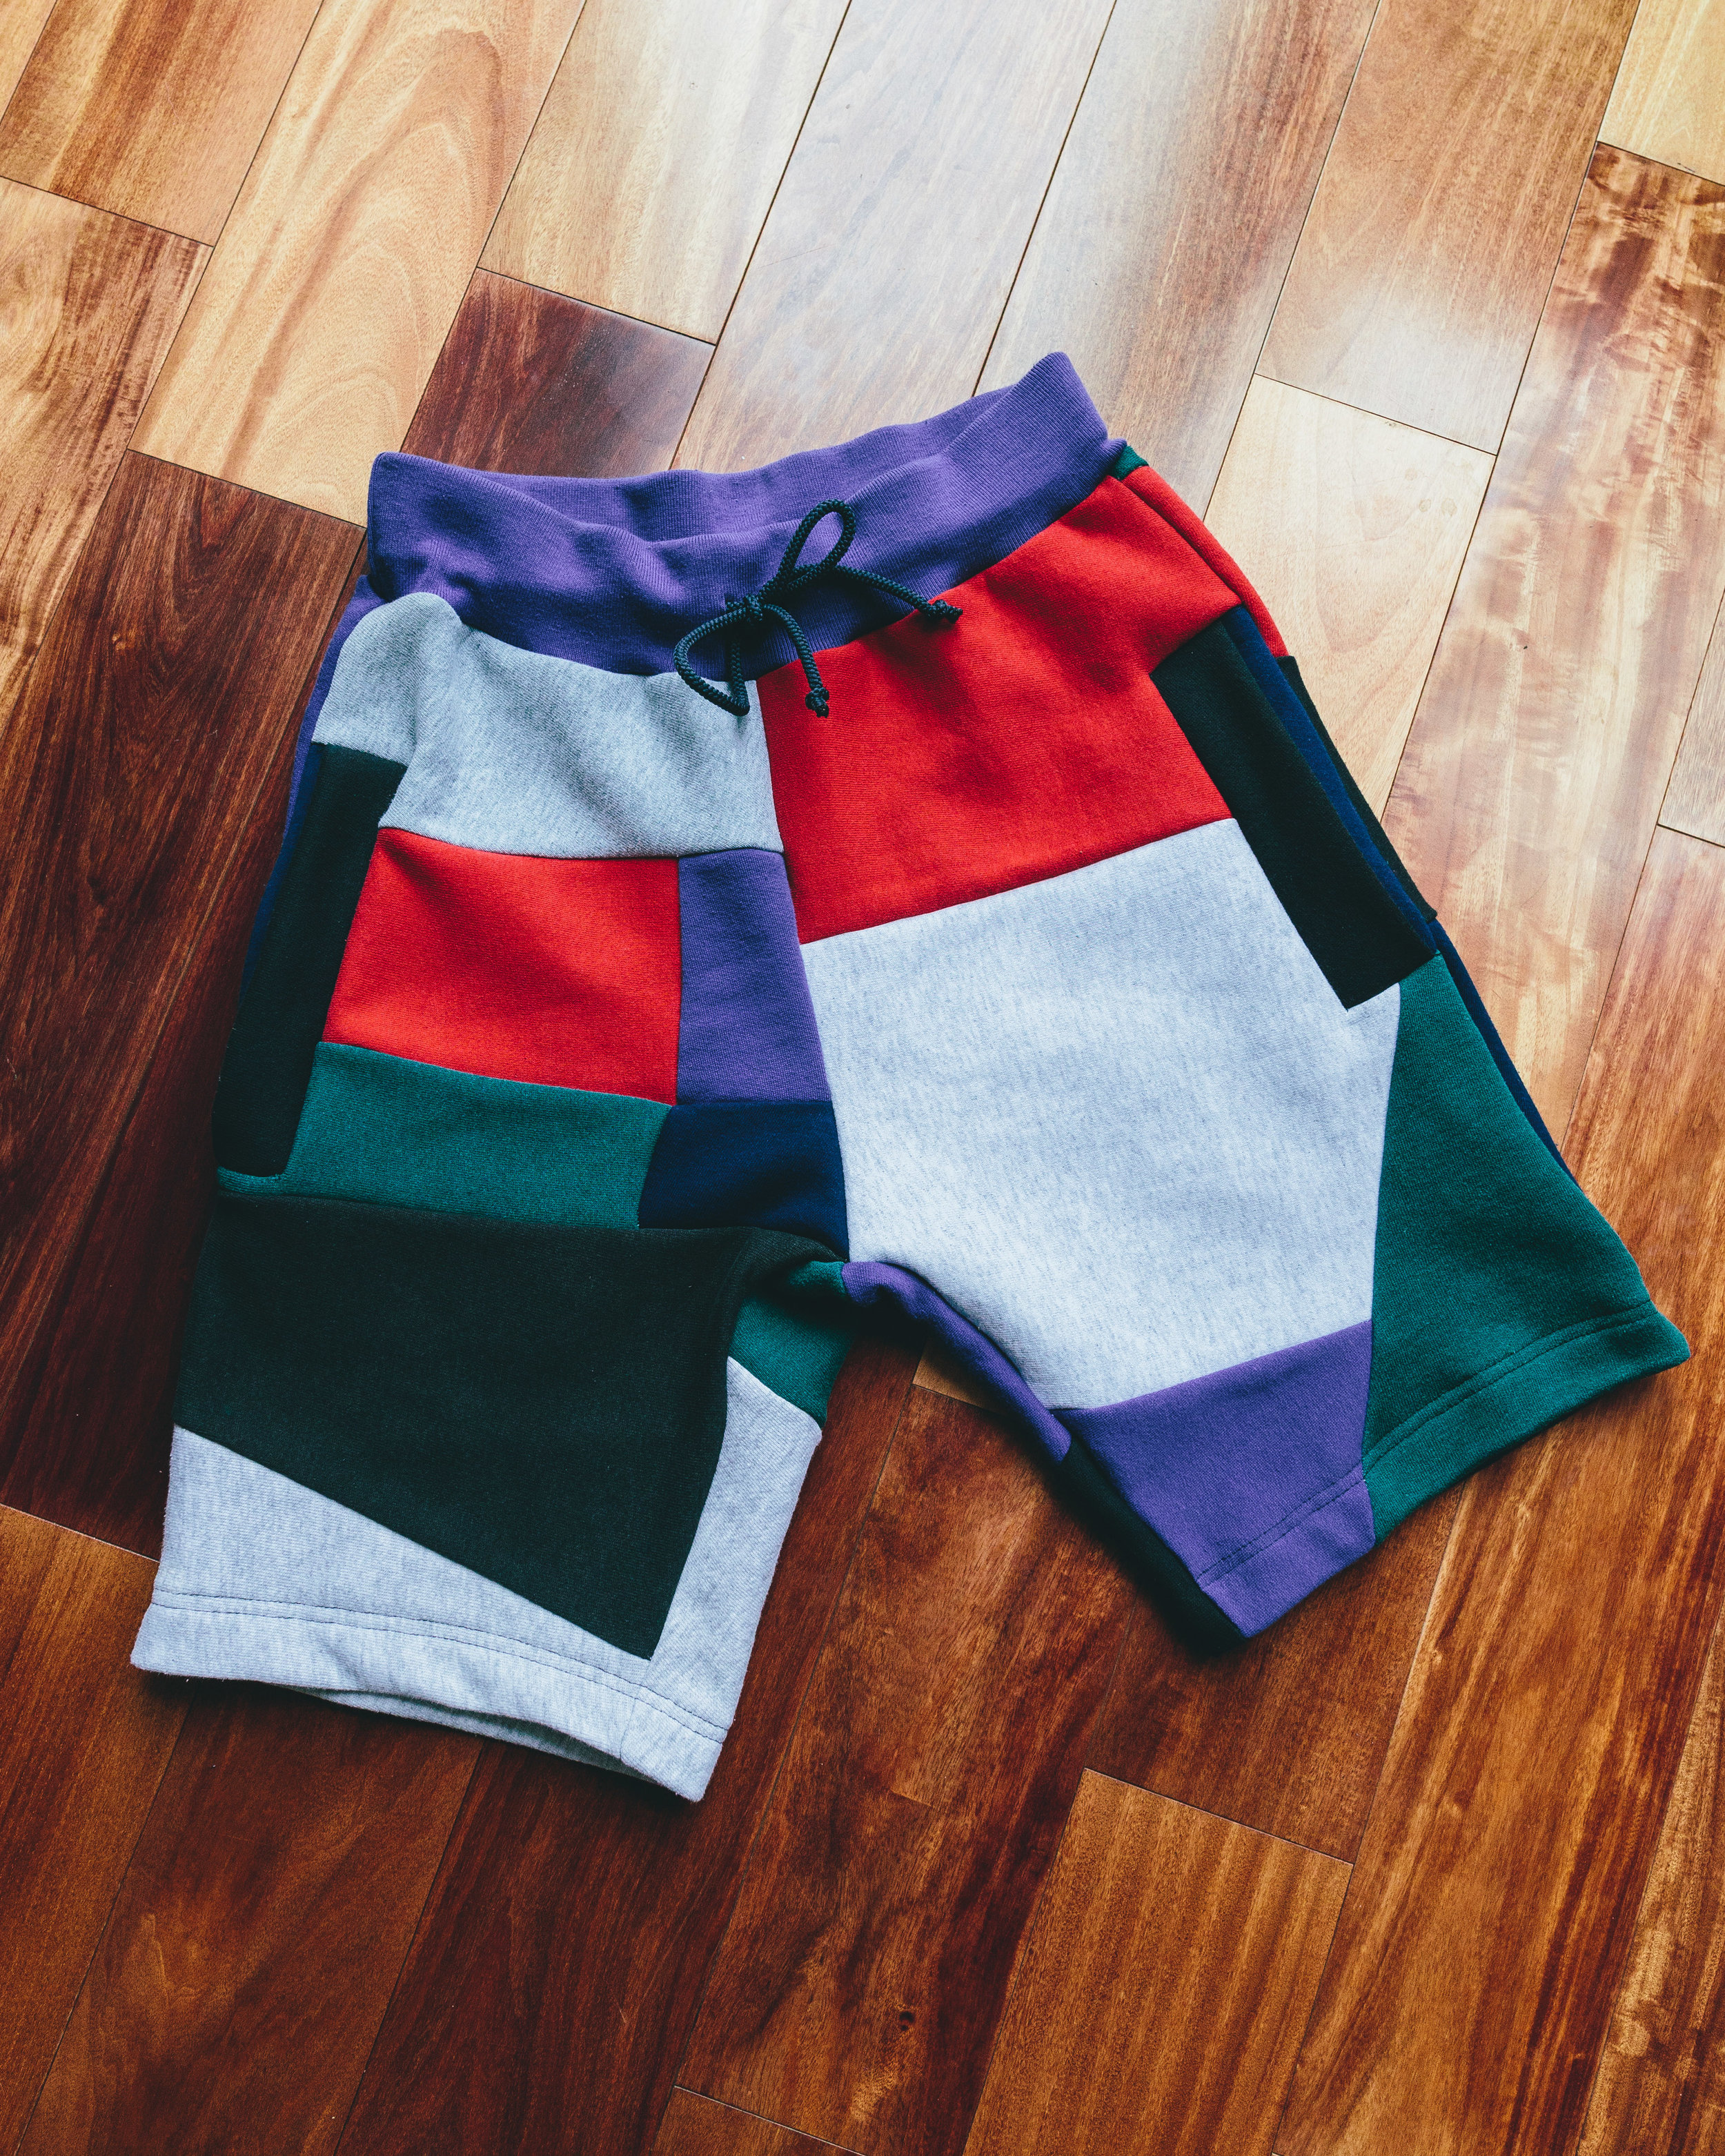 Mosaic patchwork shorts - Inspired by vintage nike and other athletic brands that used teal red and purple on many 1980's and 1990's clothing, hat, and shoe designs.